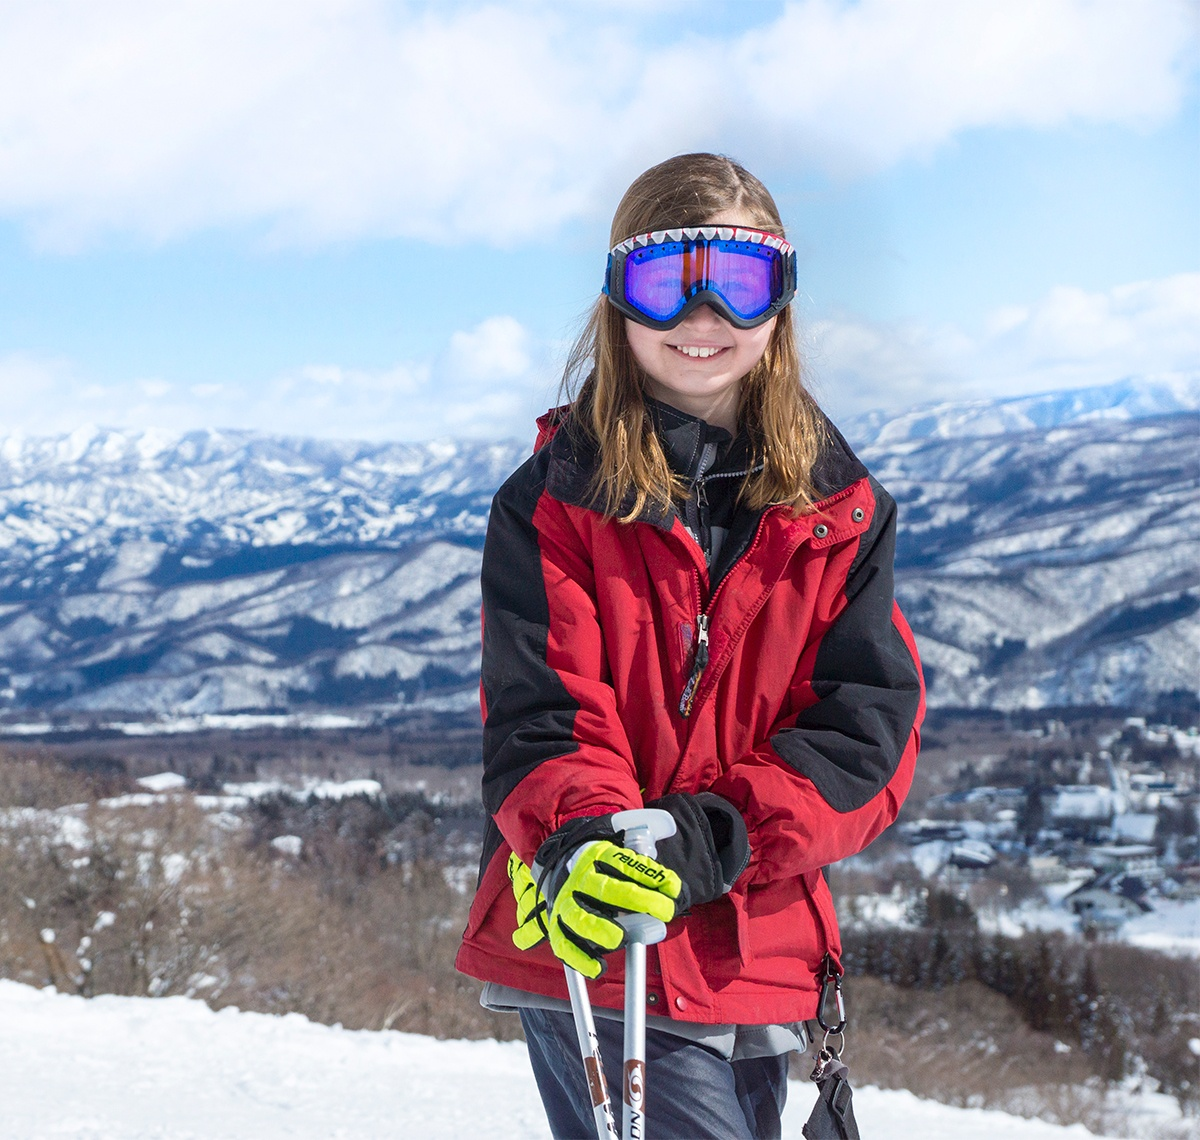 AE-Prices-1200w-x-1140h-400w Kids (7-14) Alpine Explorers - Group Ski Lessons